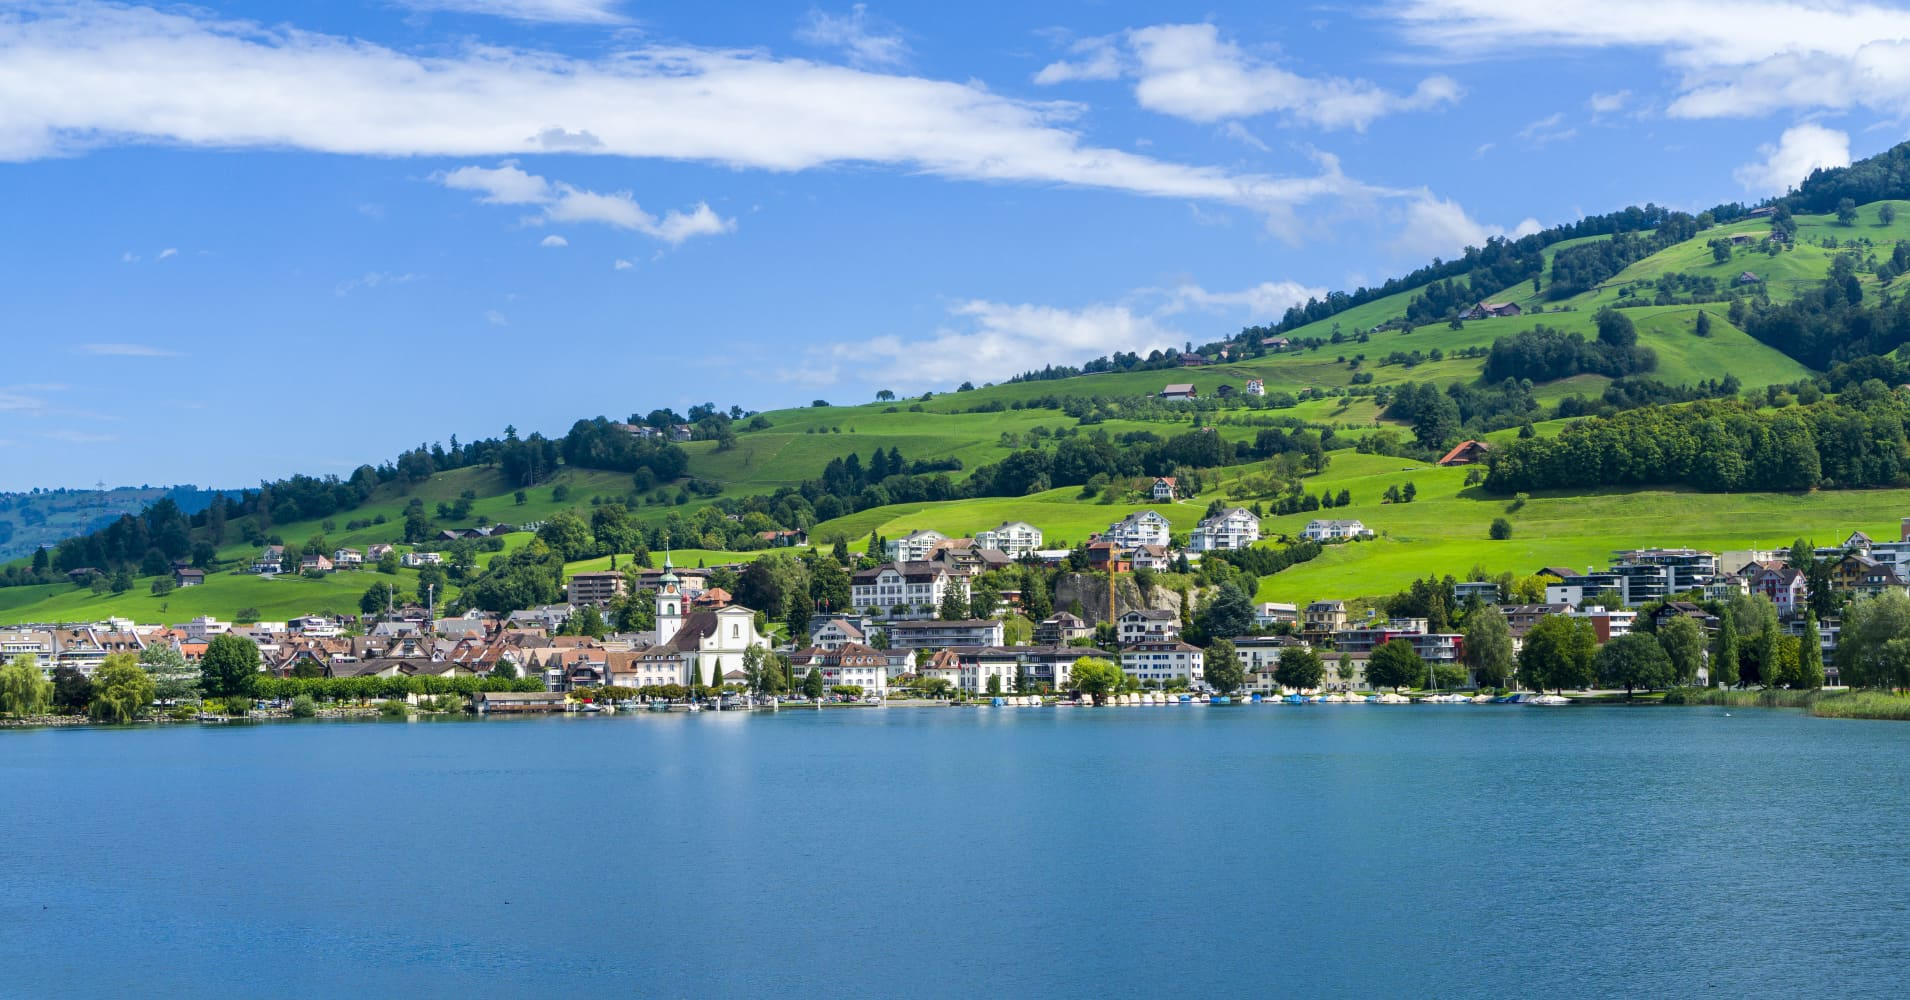 tax avoidance zug a canton in switzerland u0026 39s may raise rates